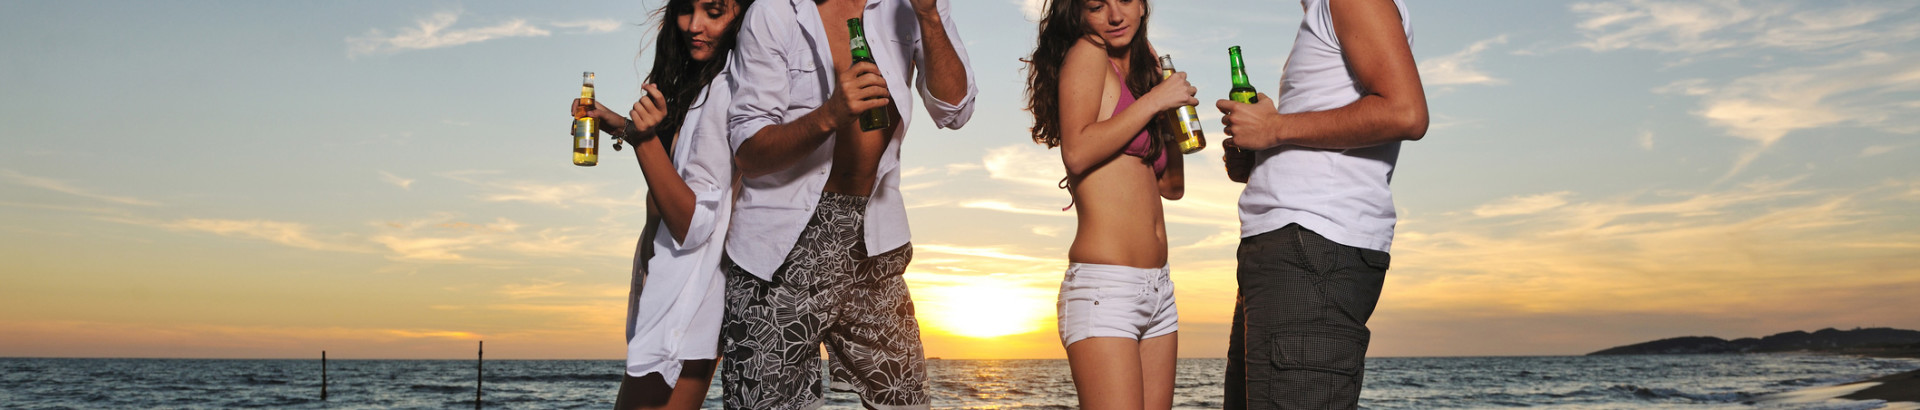 hot-girls-and-guys-partying-by-the-beach-at-sunset-IST